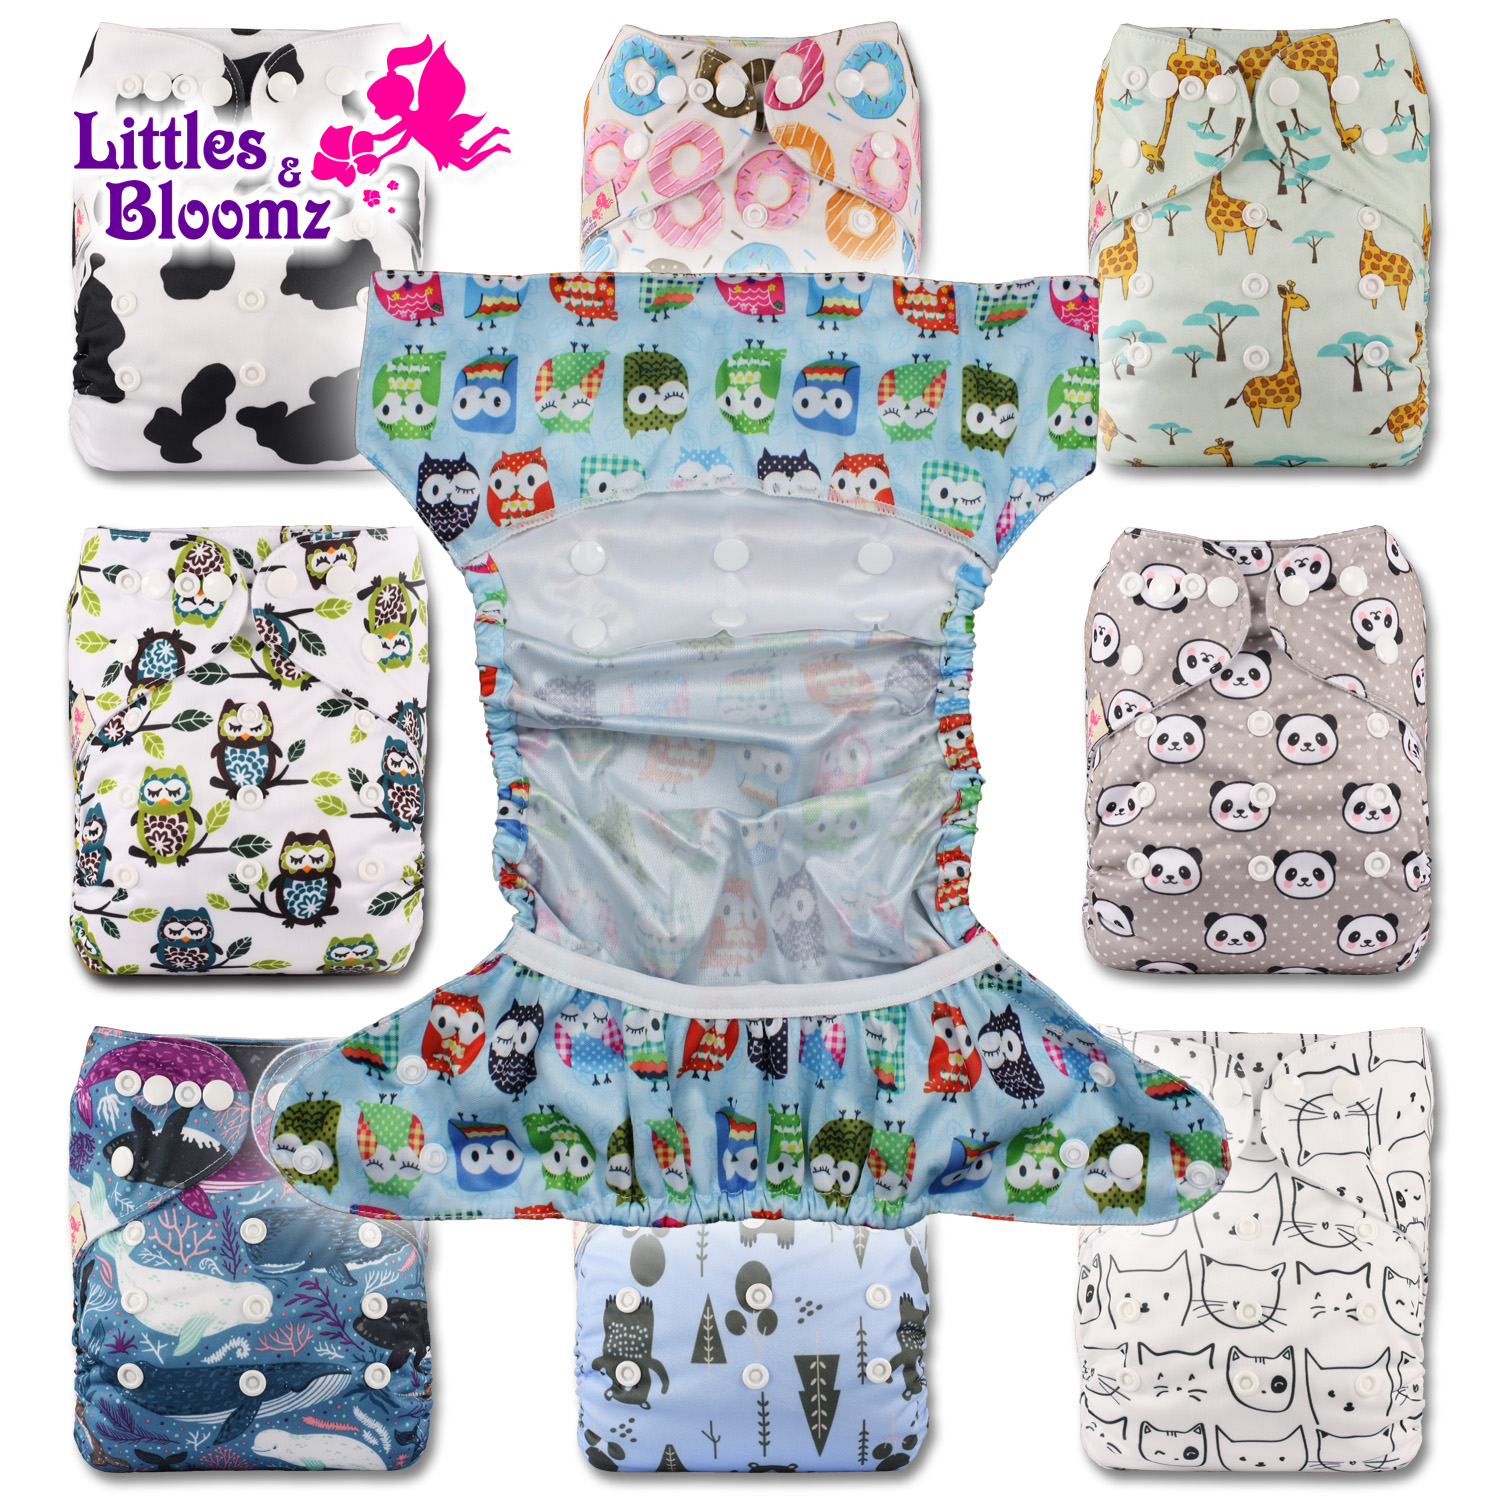 Reusable Pocket Real Cloth Nappy Washable Diaper Bamboo Charcoal Pattern 18 Littles /& Bloomz with 1 Charcoal Insert